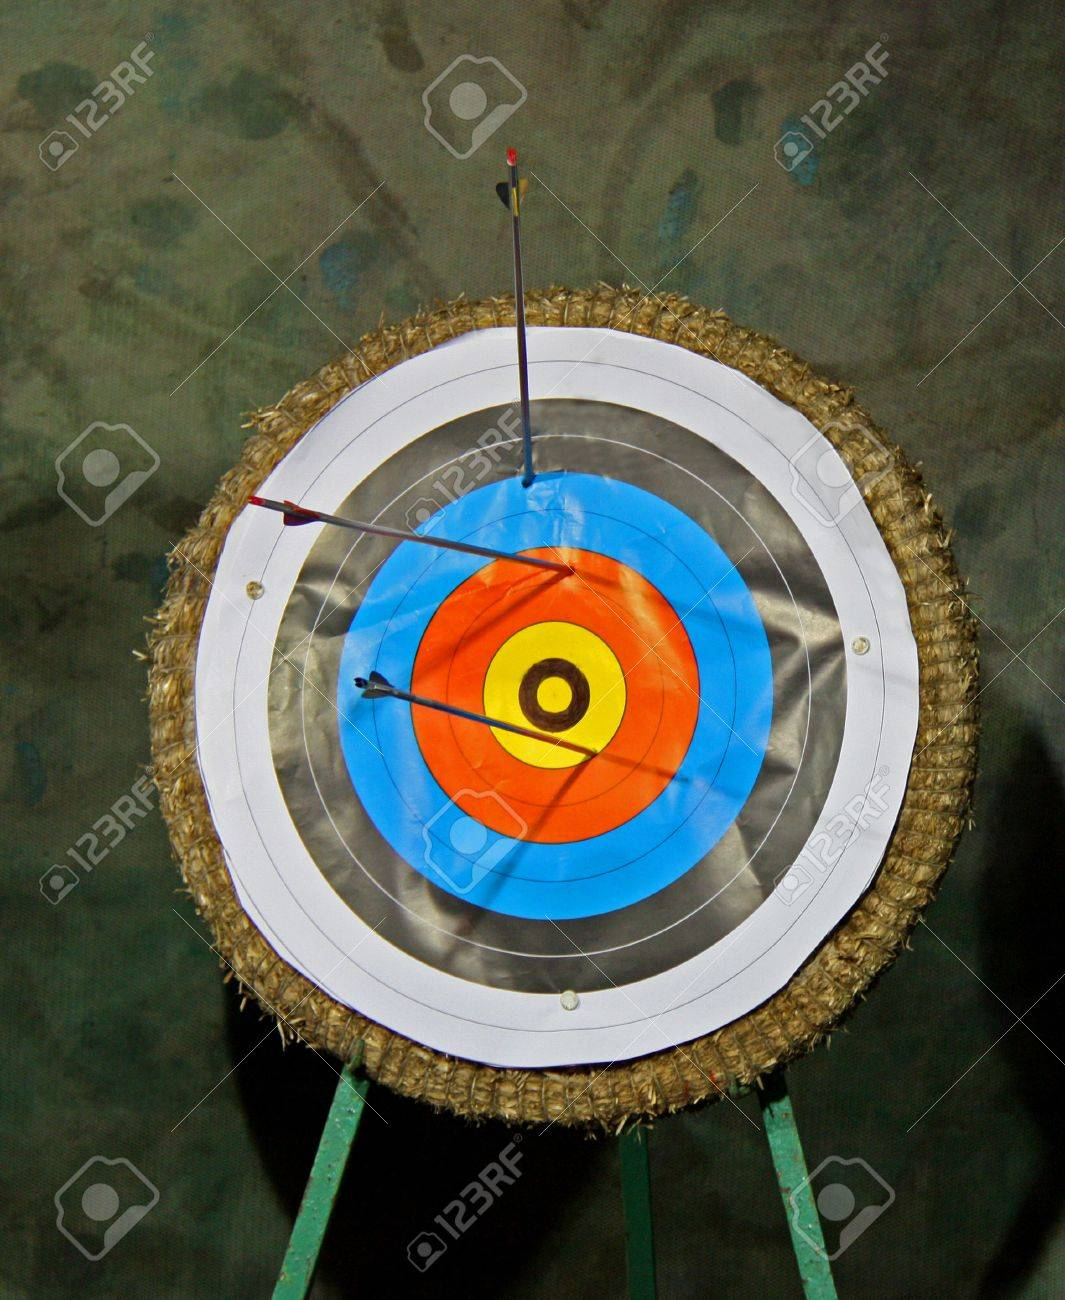 A Traditional Archery Target on a Straw Backed Stand